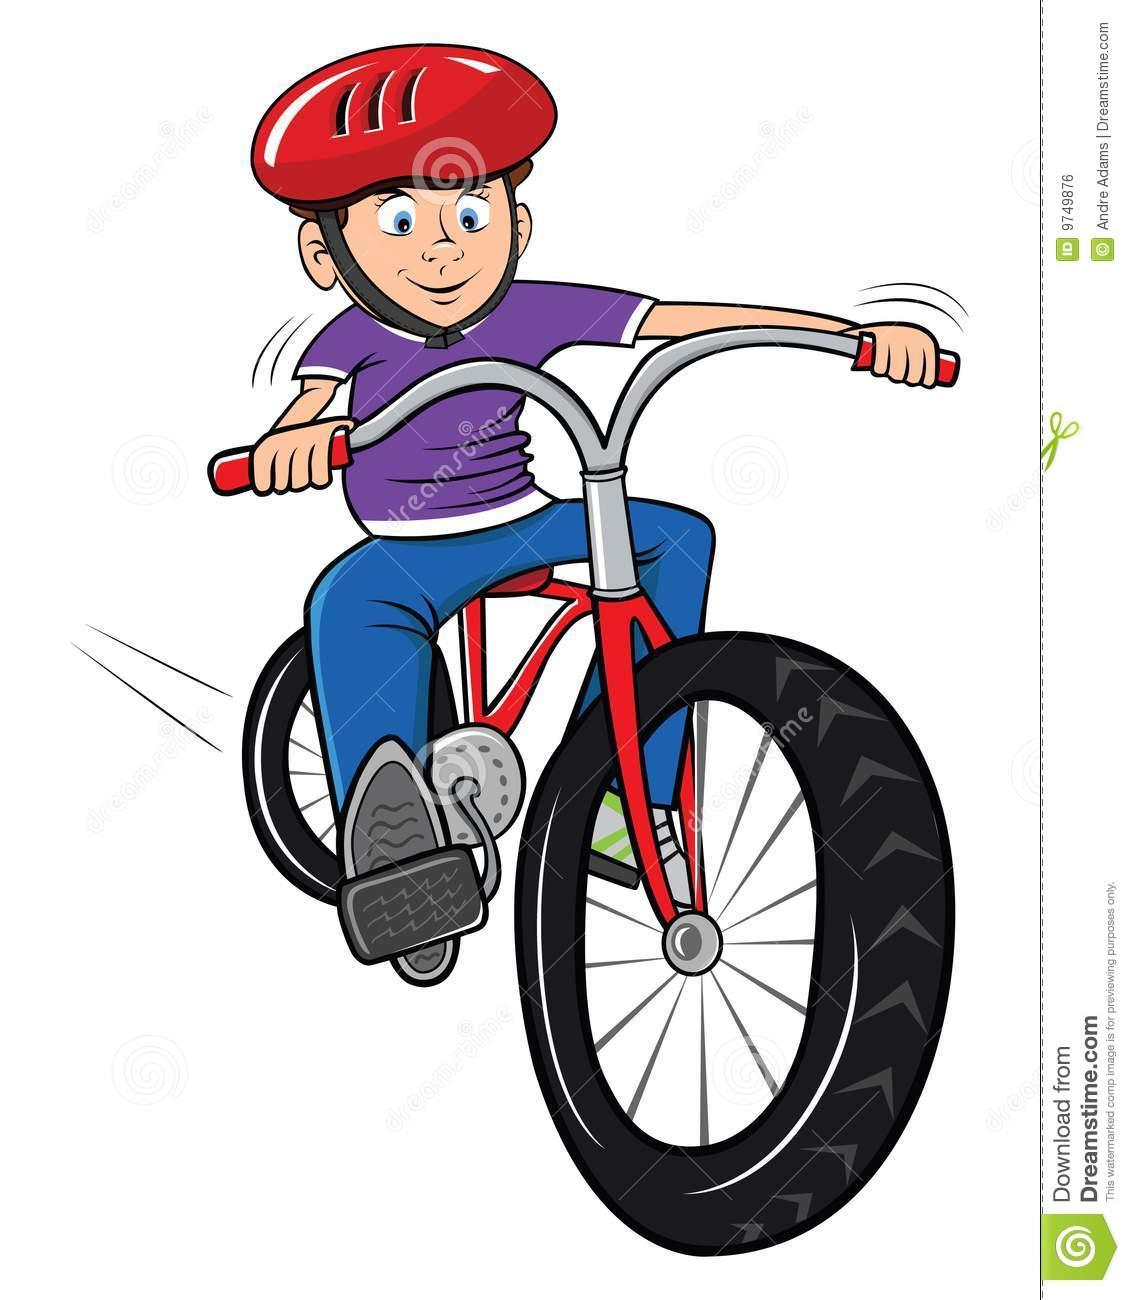 Bike clipart his Clipart #14 Bicycle Clipart 20clip